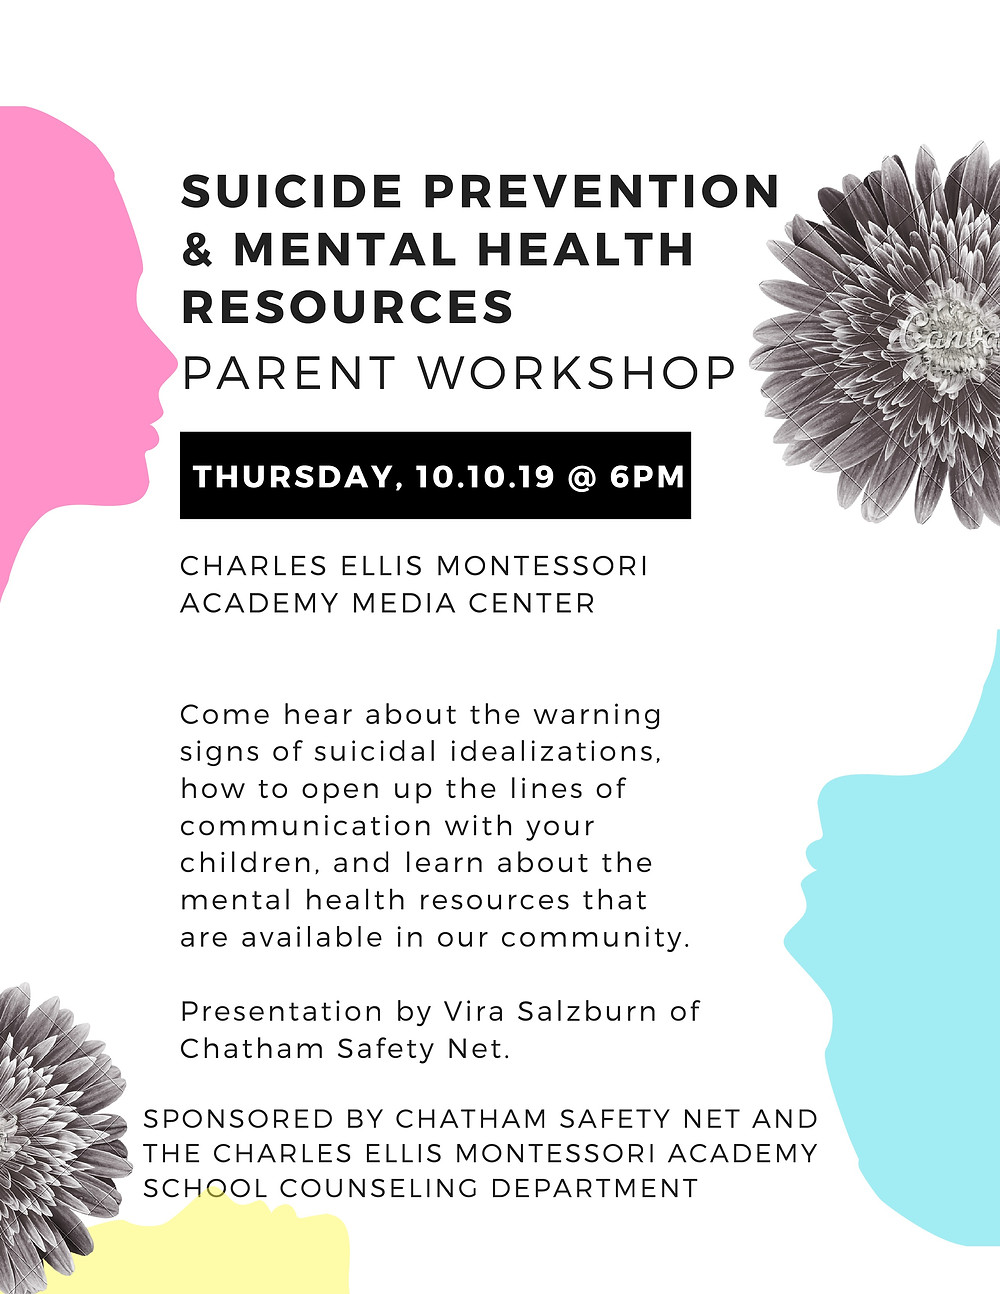 Suicide Prevention and Mental Health Resources